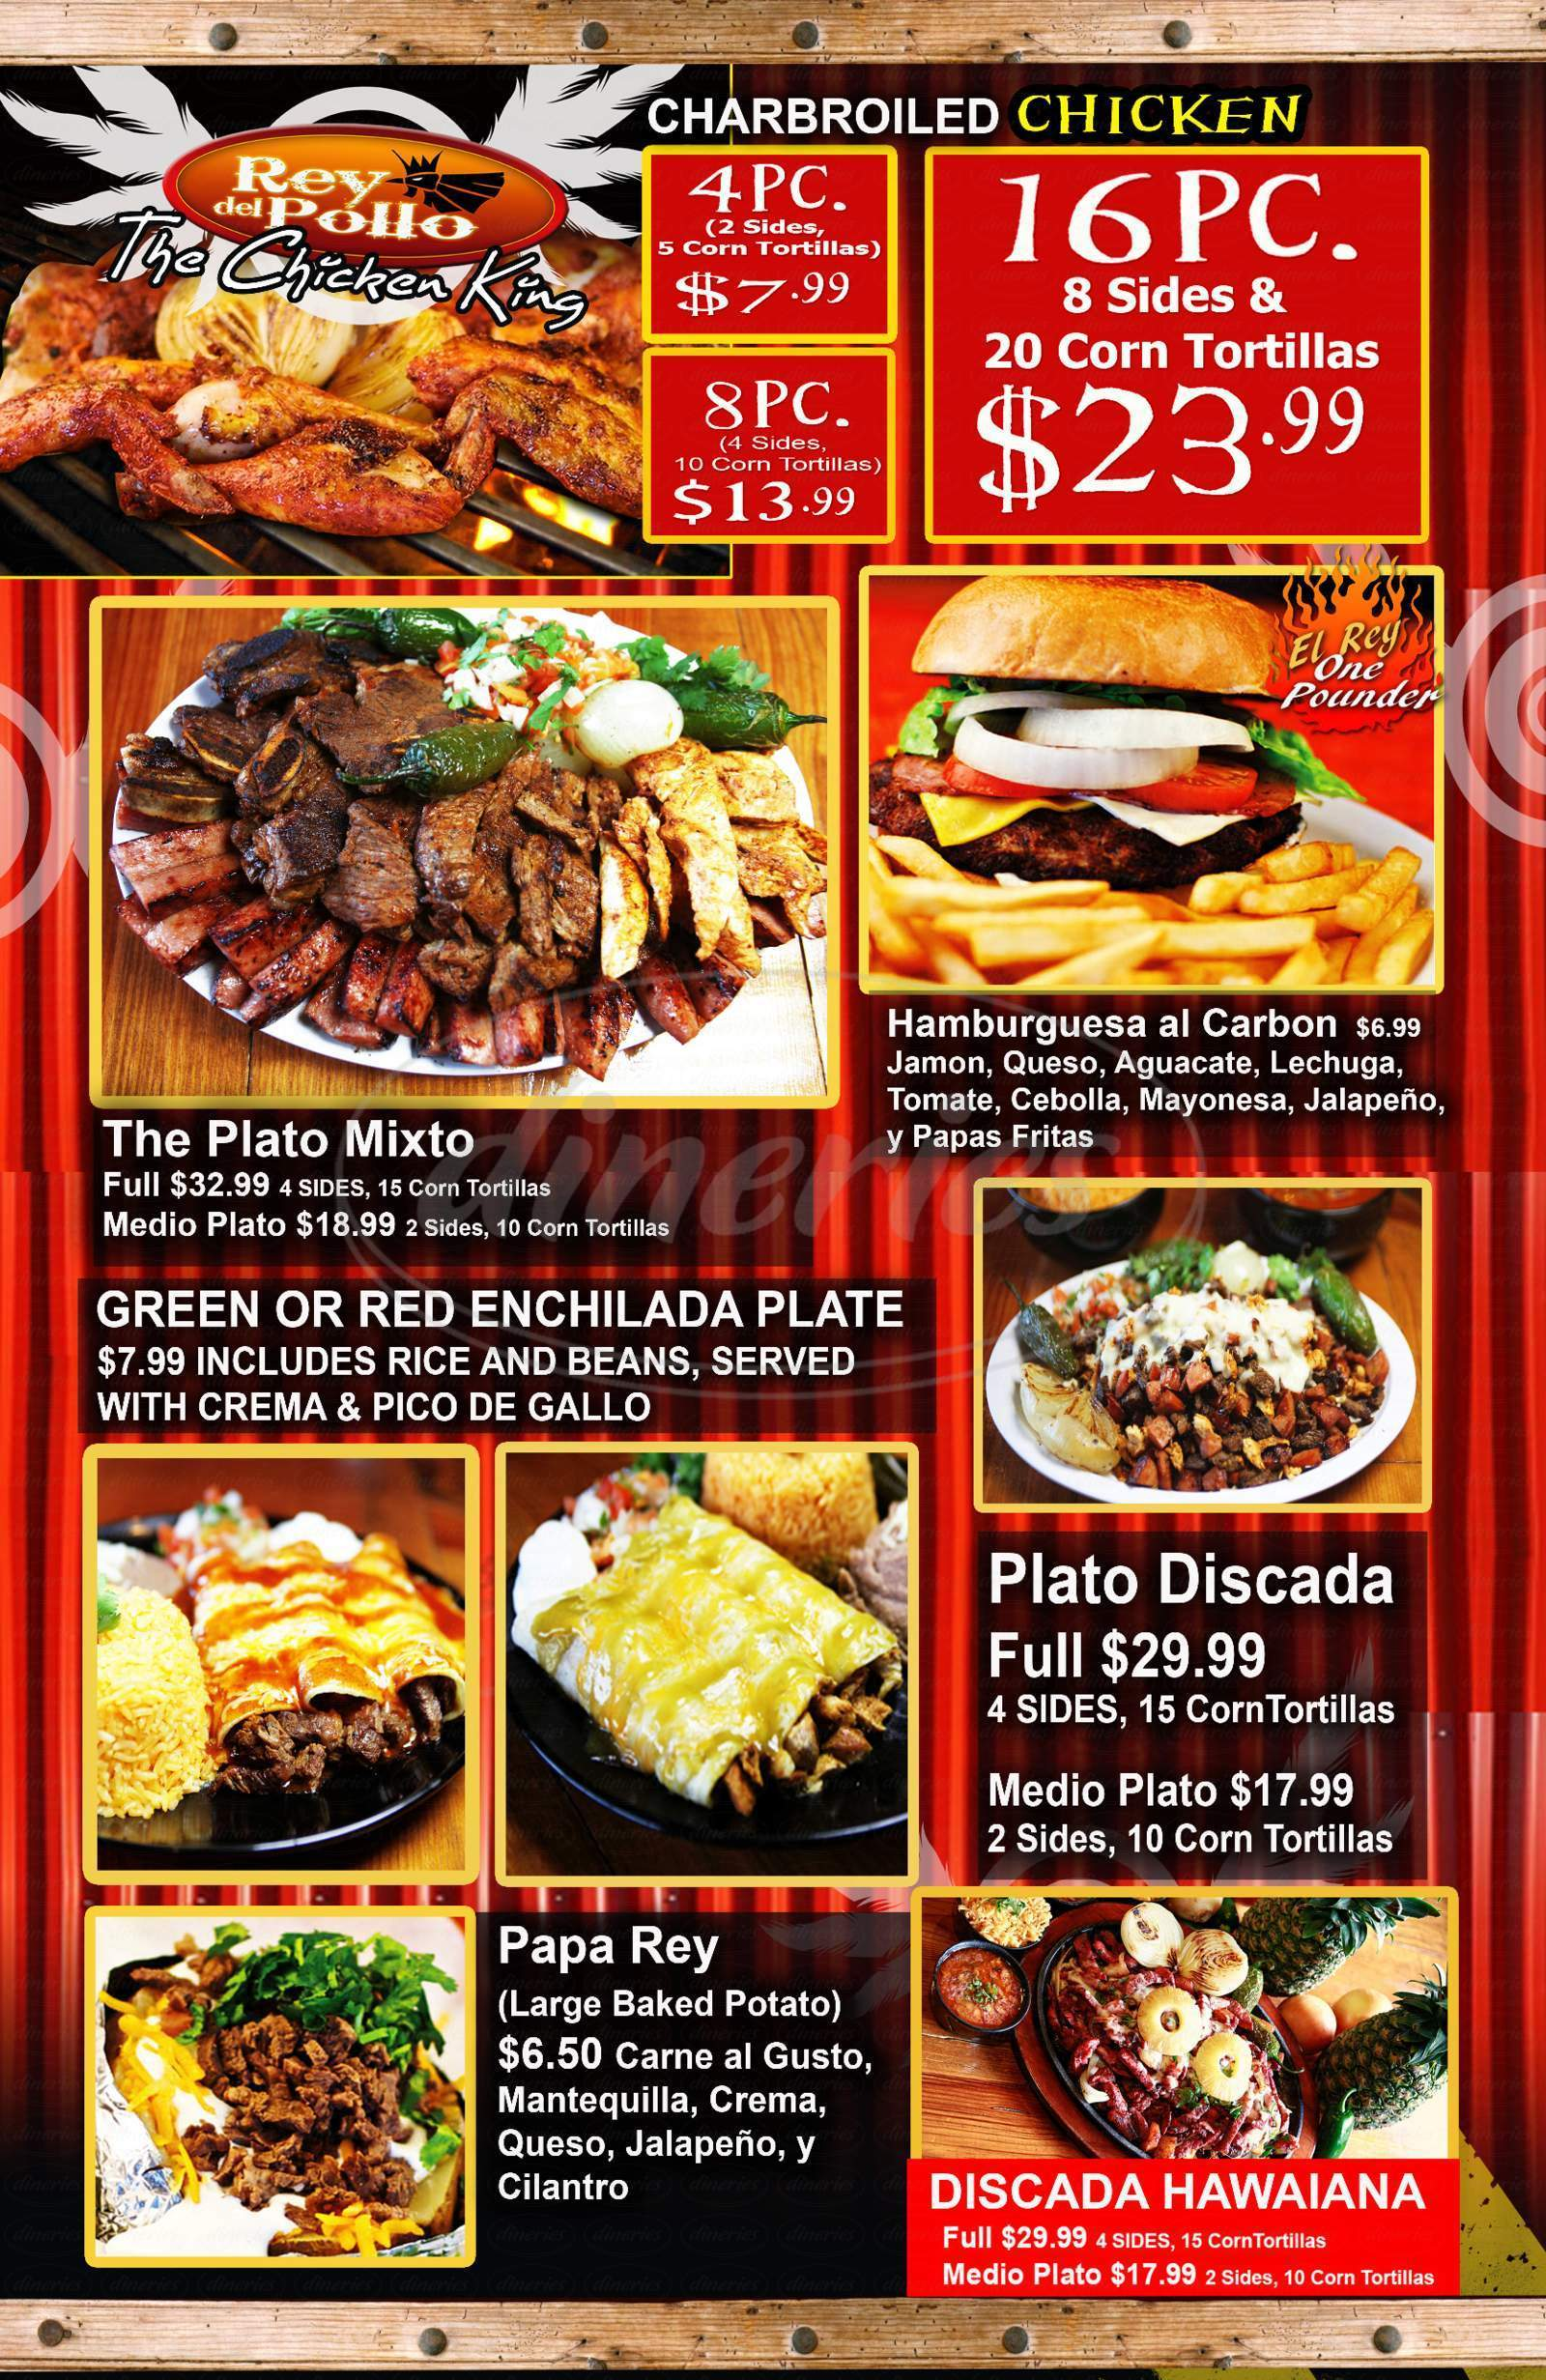 menu for Rey De Pollo